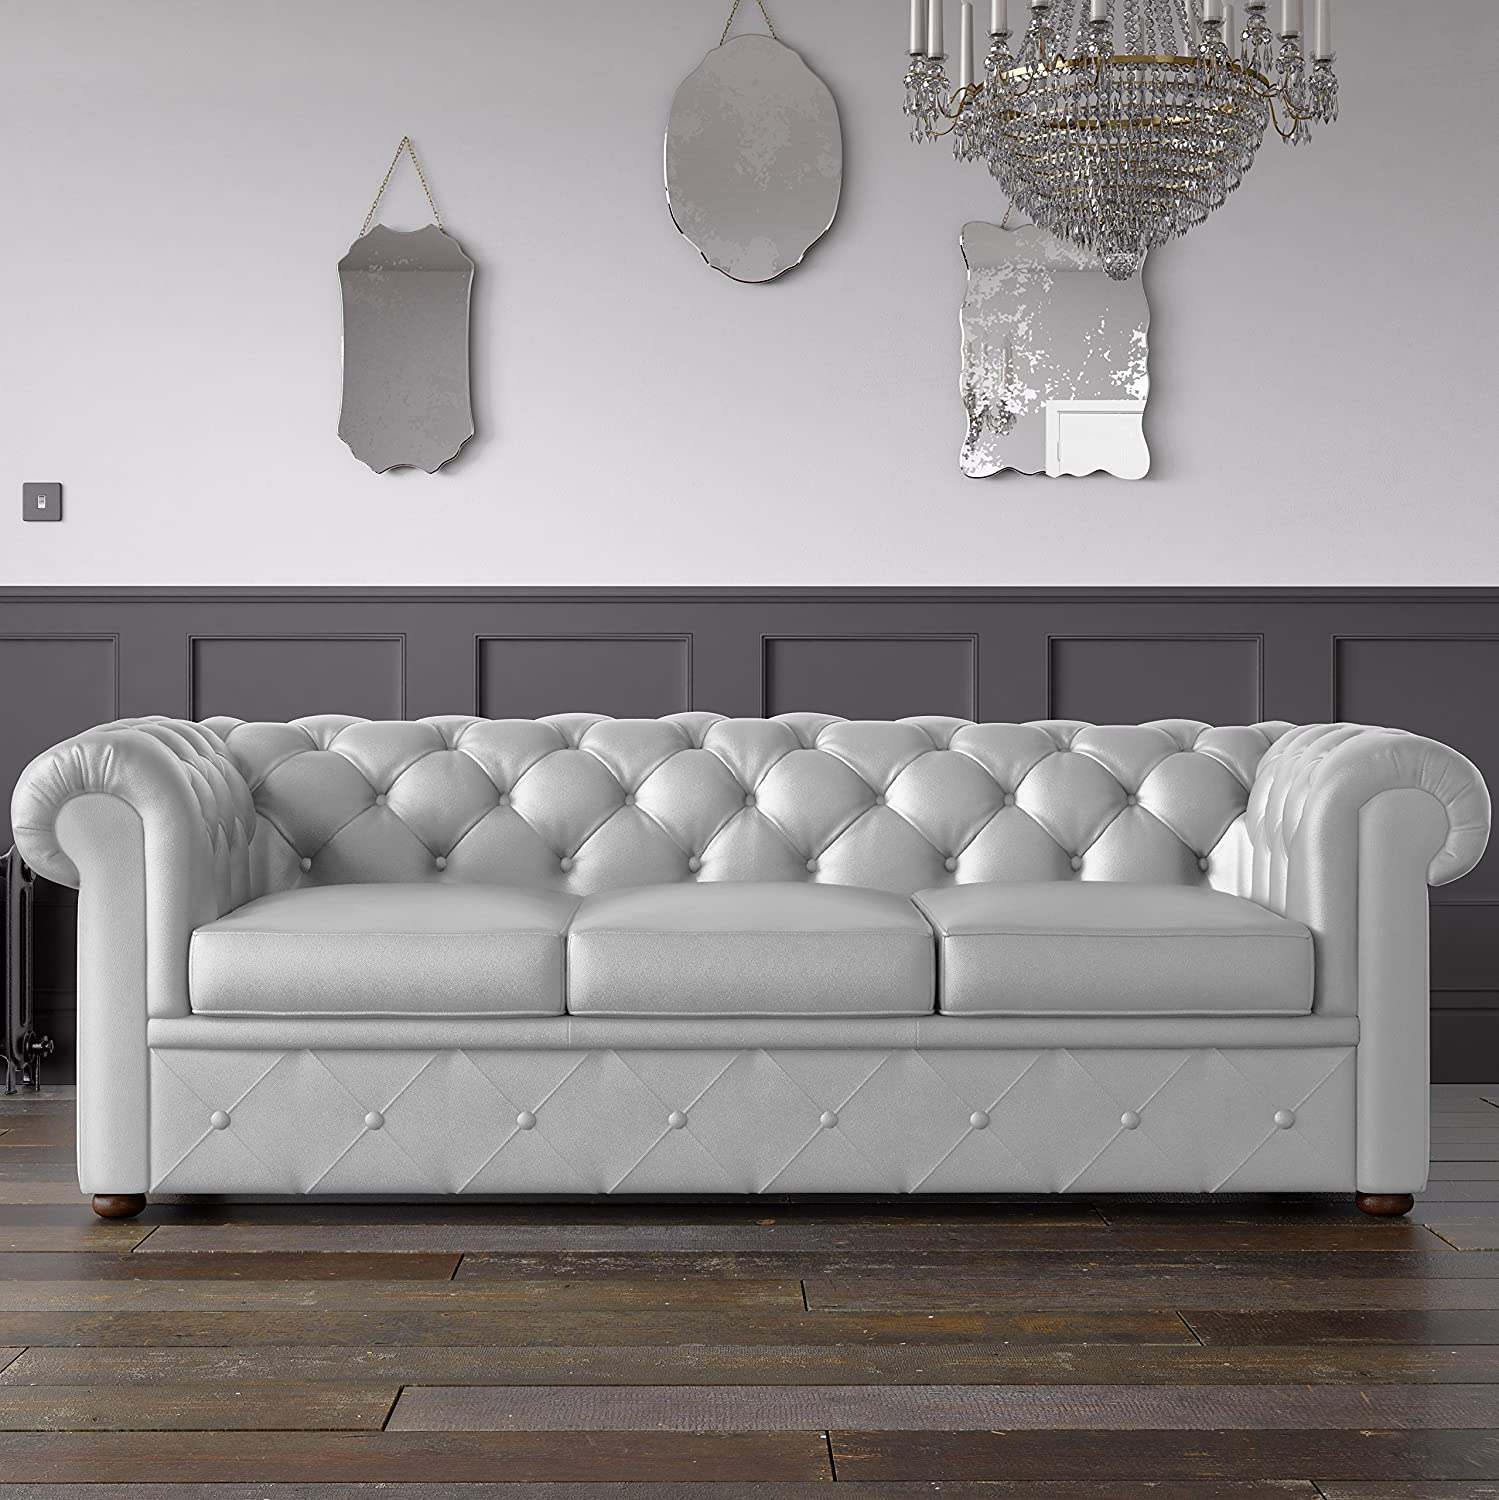 Remarkable Chesterfield Faux Leather Sofa White 3 Seater Amazon Co Uk Ncnpc Chair Design For Home Ncnpcorg